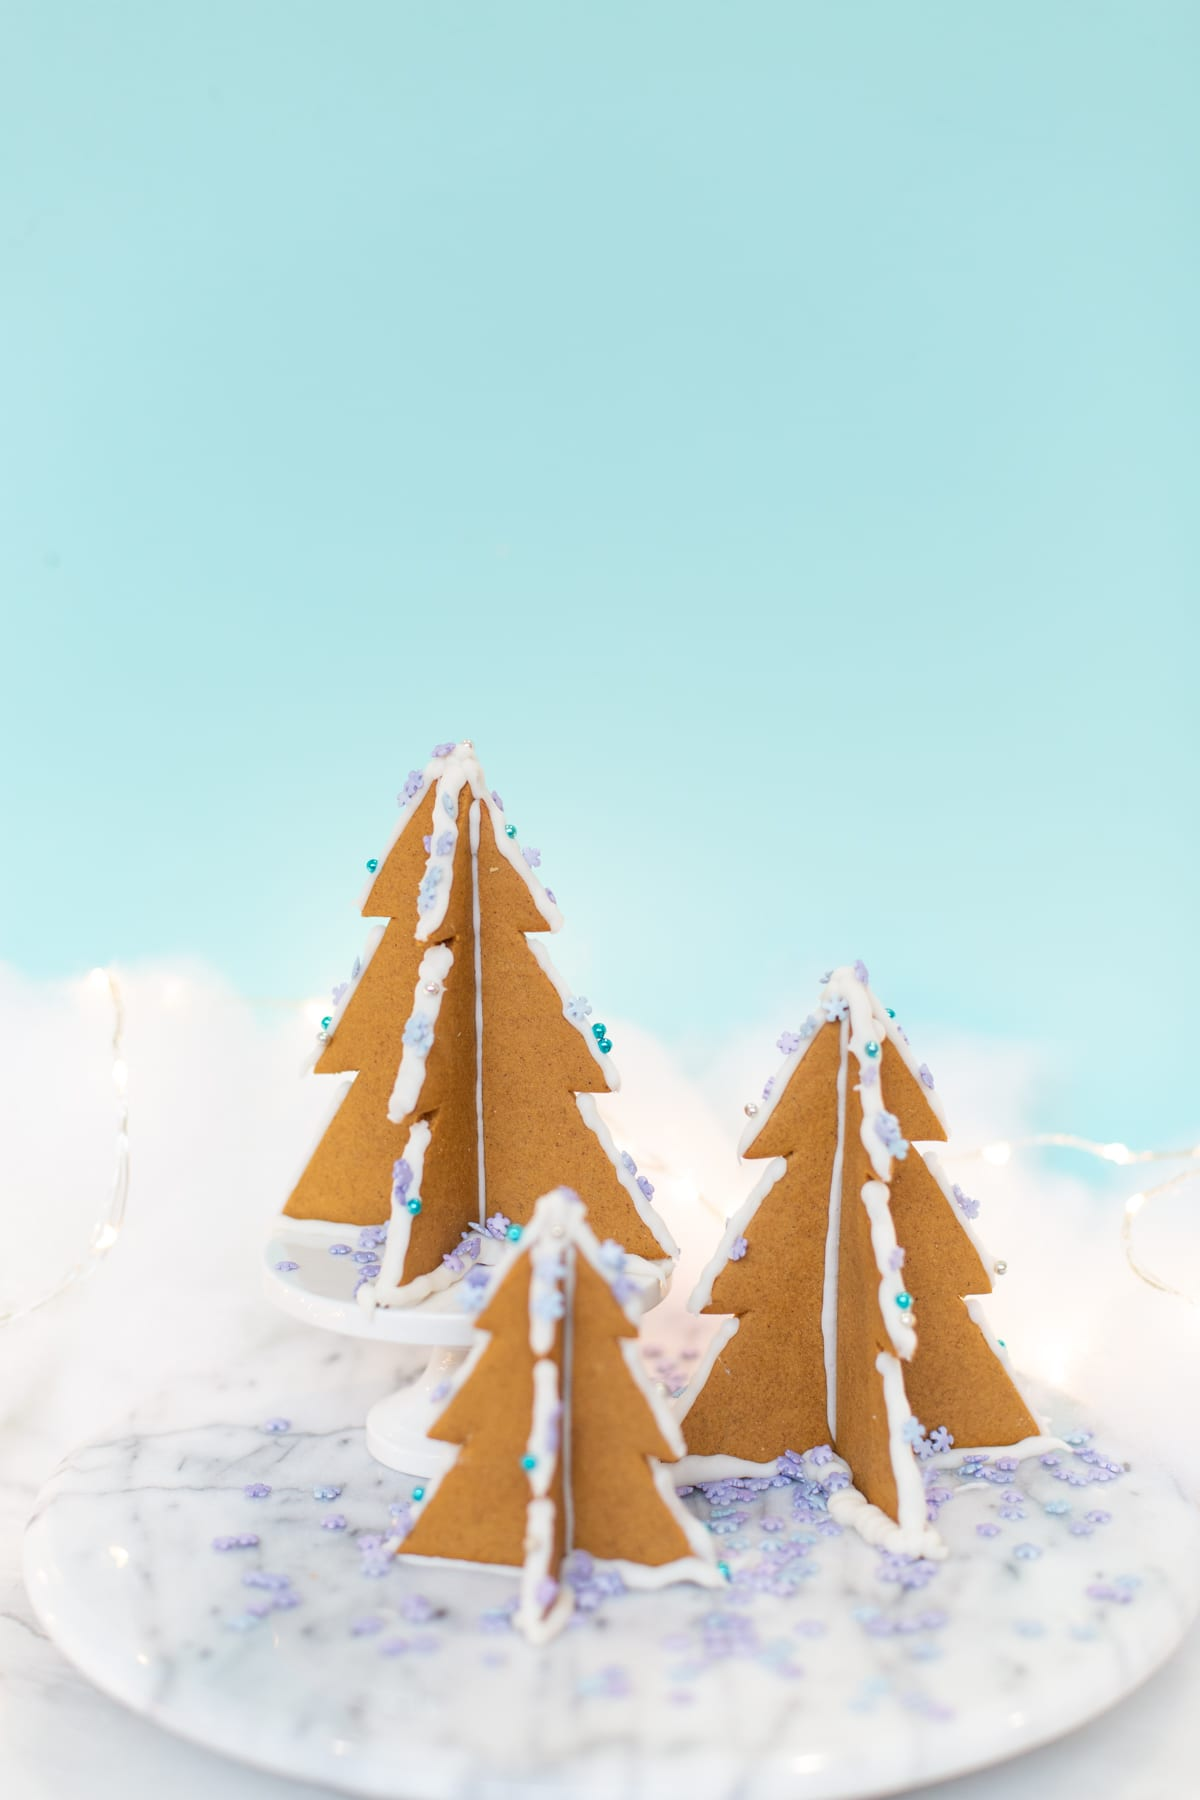 How To Make 3d Gingerbread Christmas Trees Lovely Indeed